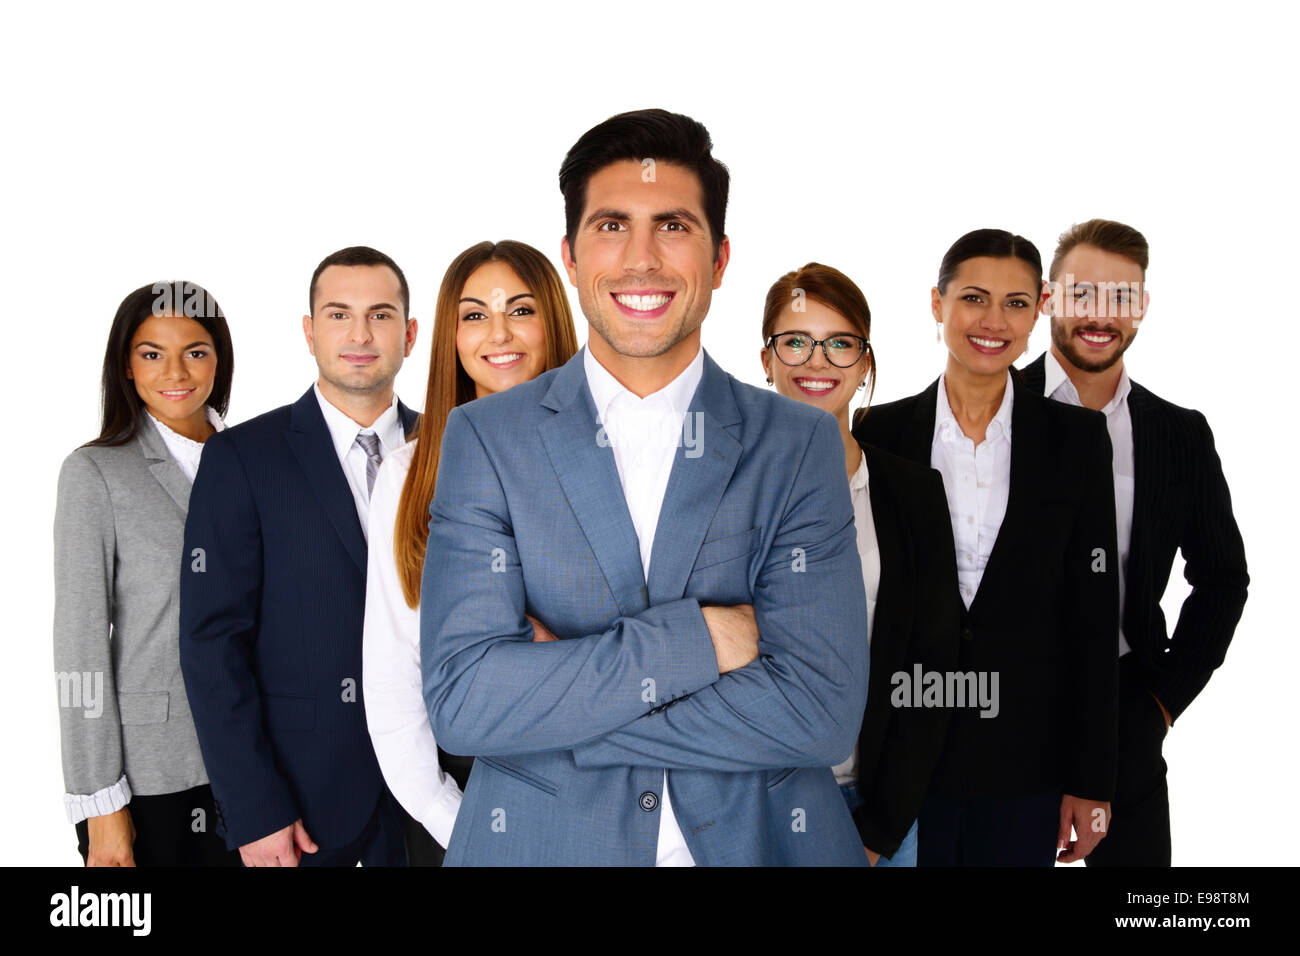 Cheerful man leading his happy team over white background - Stock Image